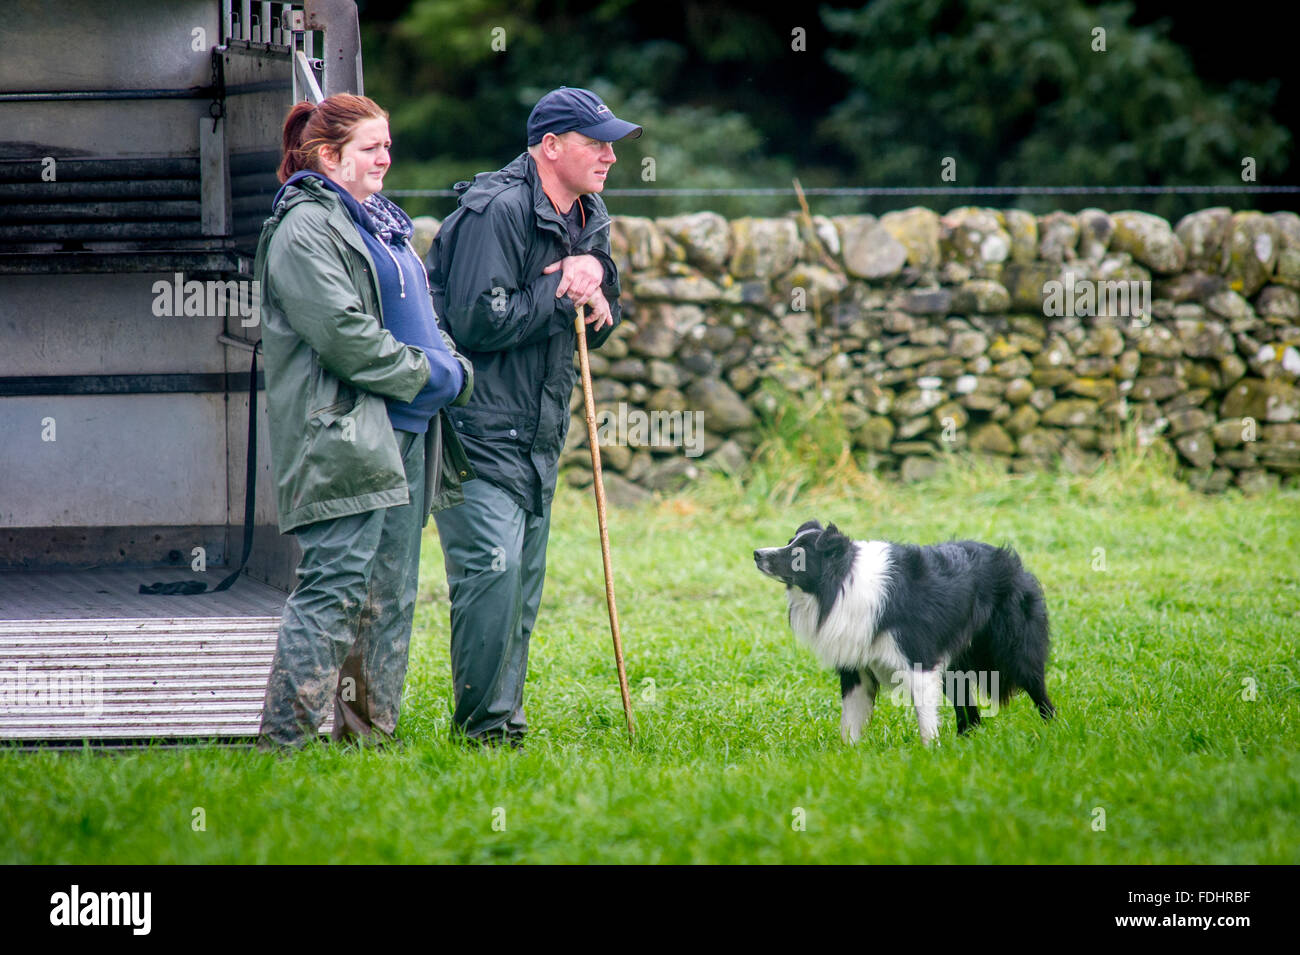 El Border Collie y su Pastor en la International Sheep Dog juicios en Moffat, Escocia, Reino Unido. Imagen De Stock